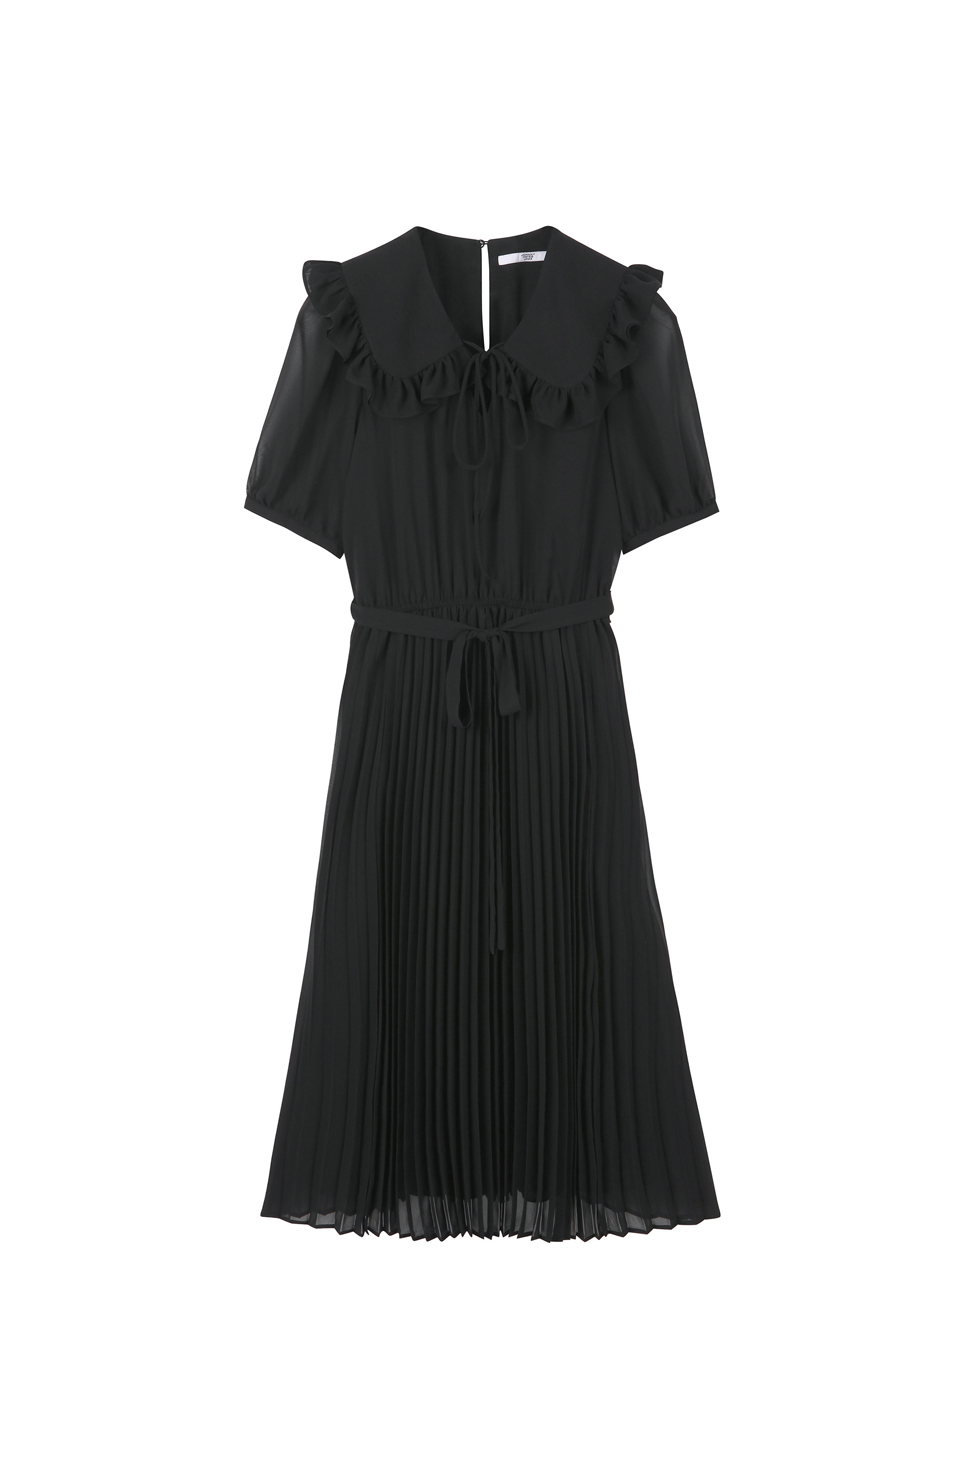 RUFFLE PLEATS DRESS - BLACK